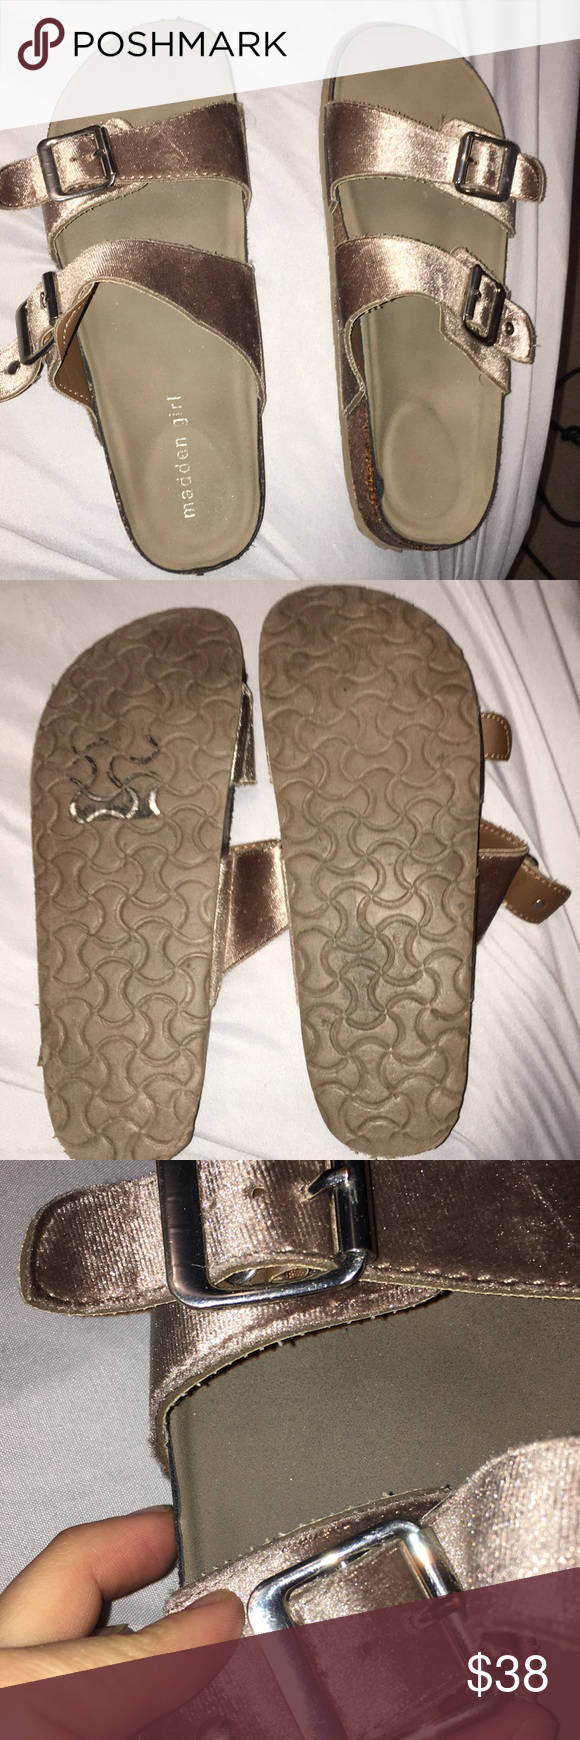 234d6e732348 Madden girl sandals.  lookalike Birkenstocks  These sandals are slightly  worn. Logo on heel is only barely visible and the fabric has peeled a tiny  bit on ...